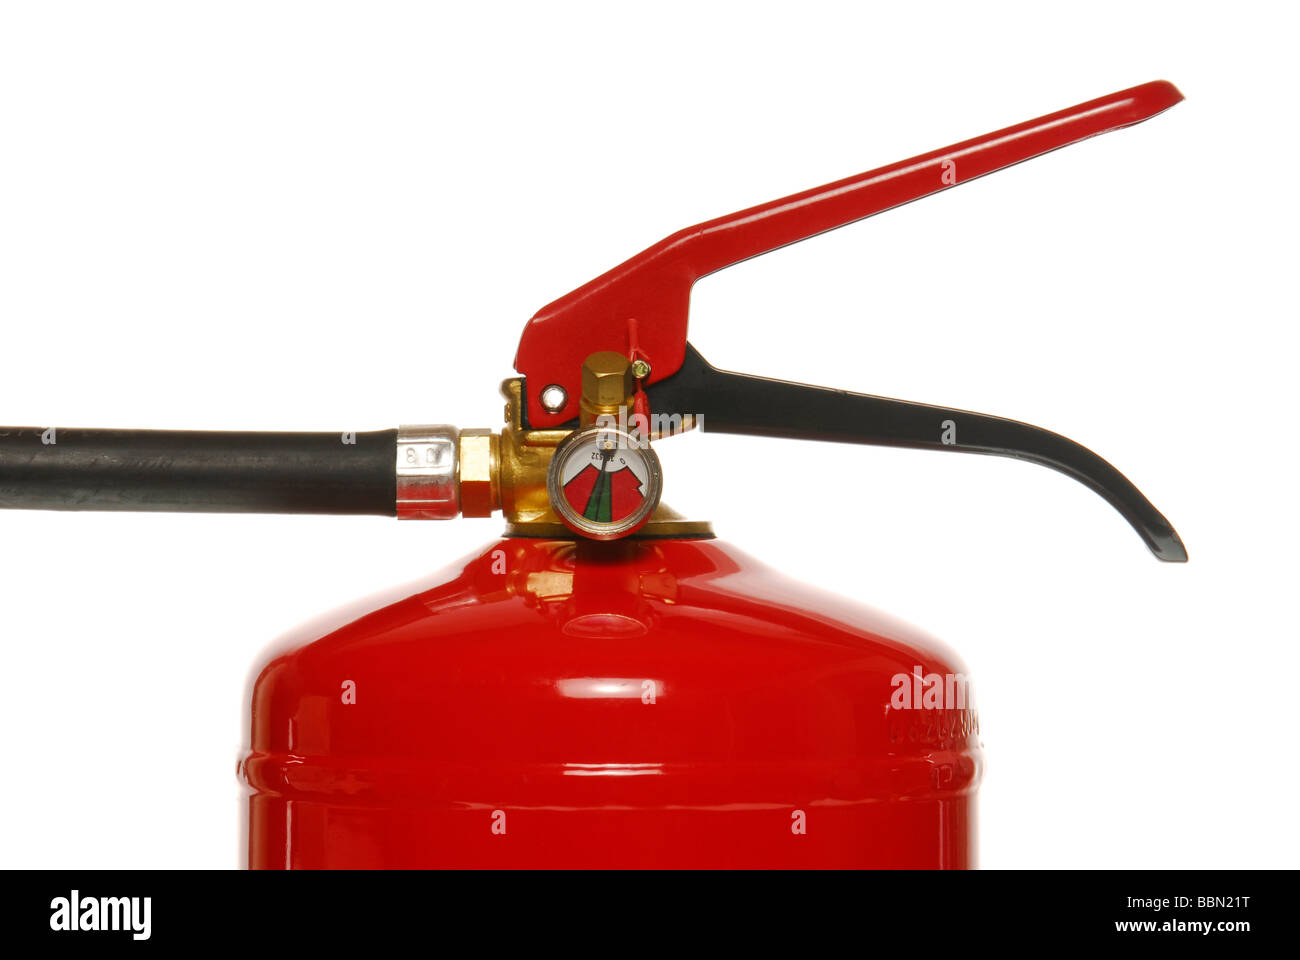 Macro of a fire extinguisher - Stock Image